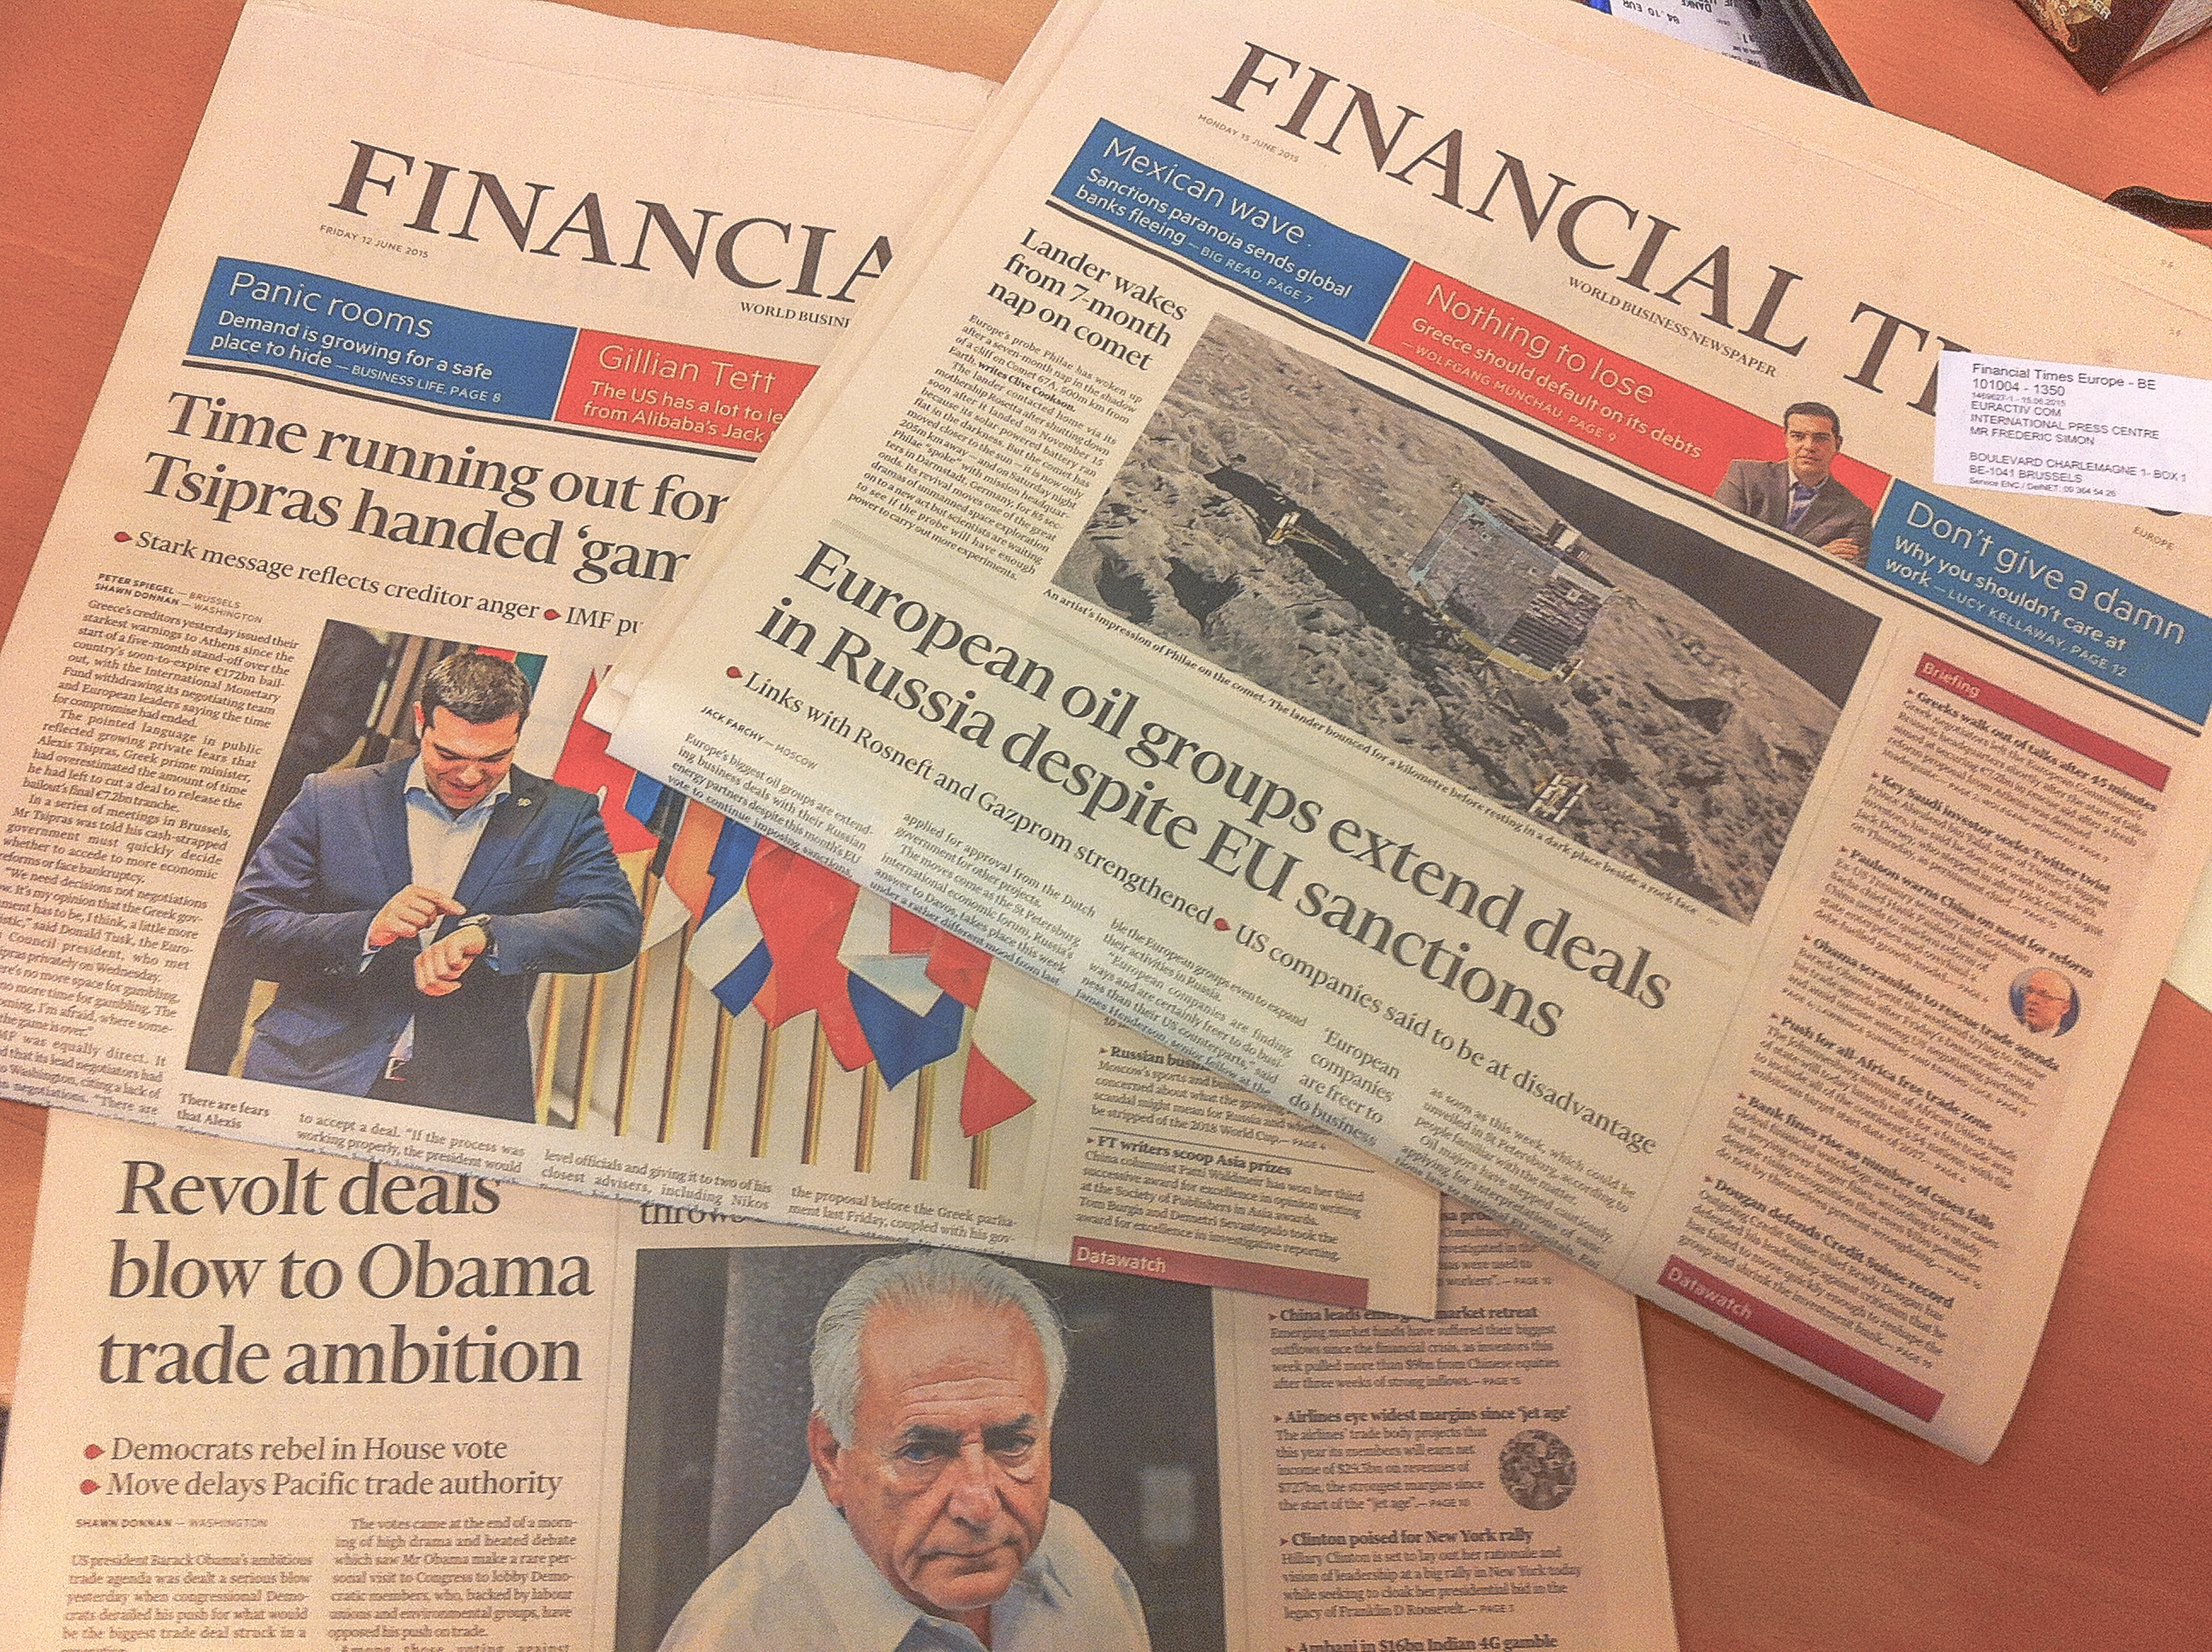 Japanese media group Nikkei buys the Financial Times – EURACTIV com